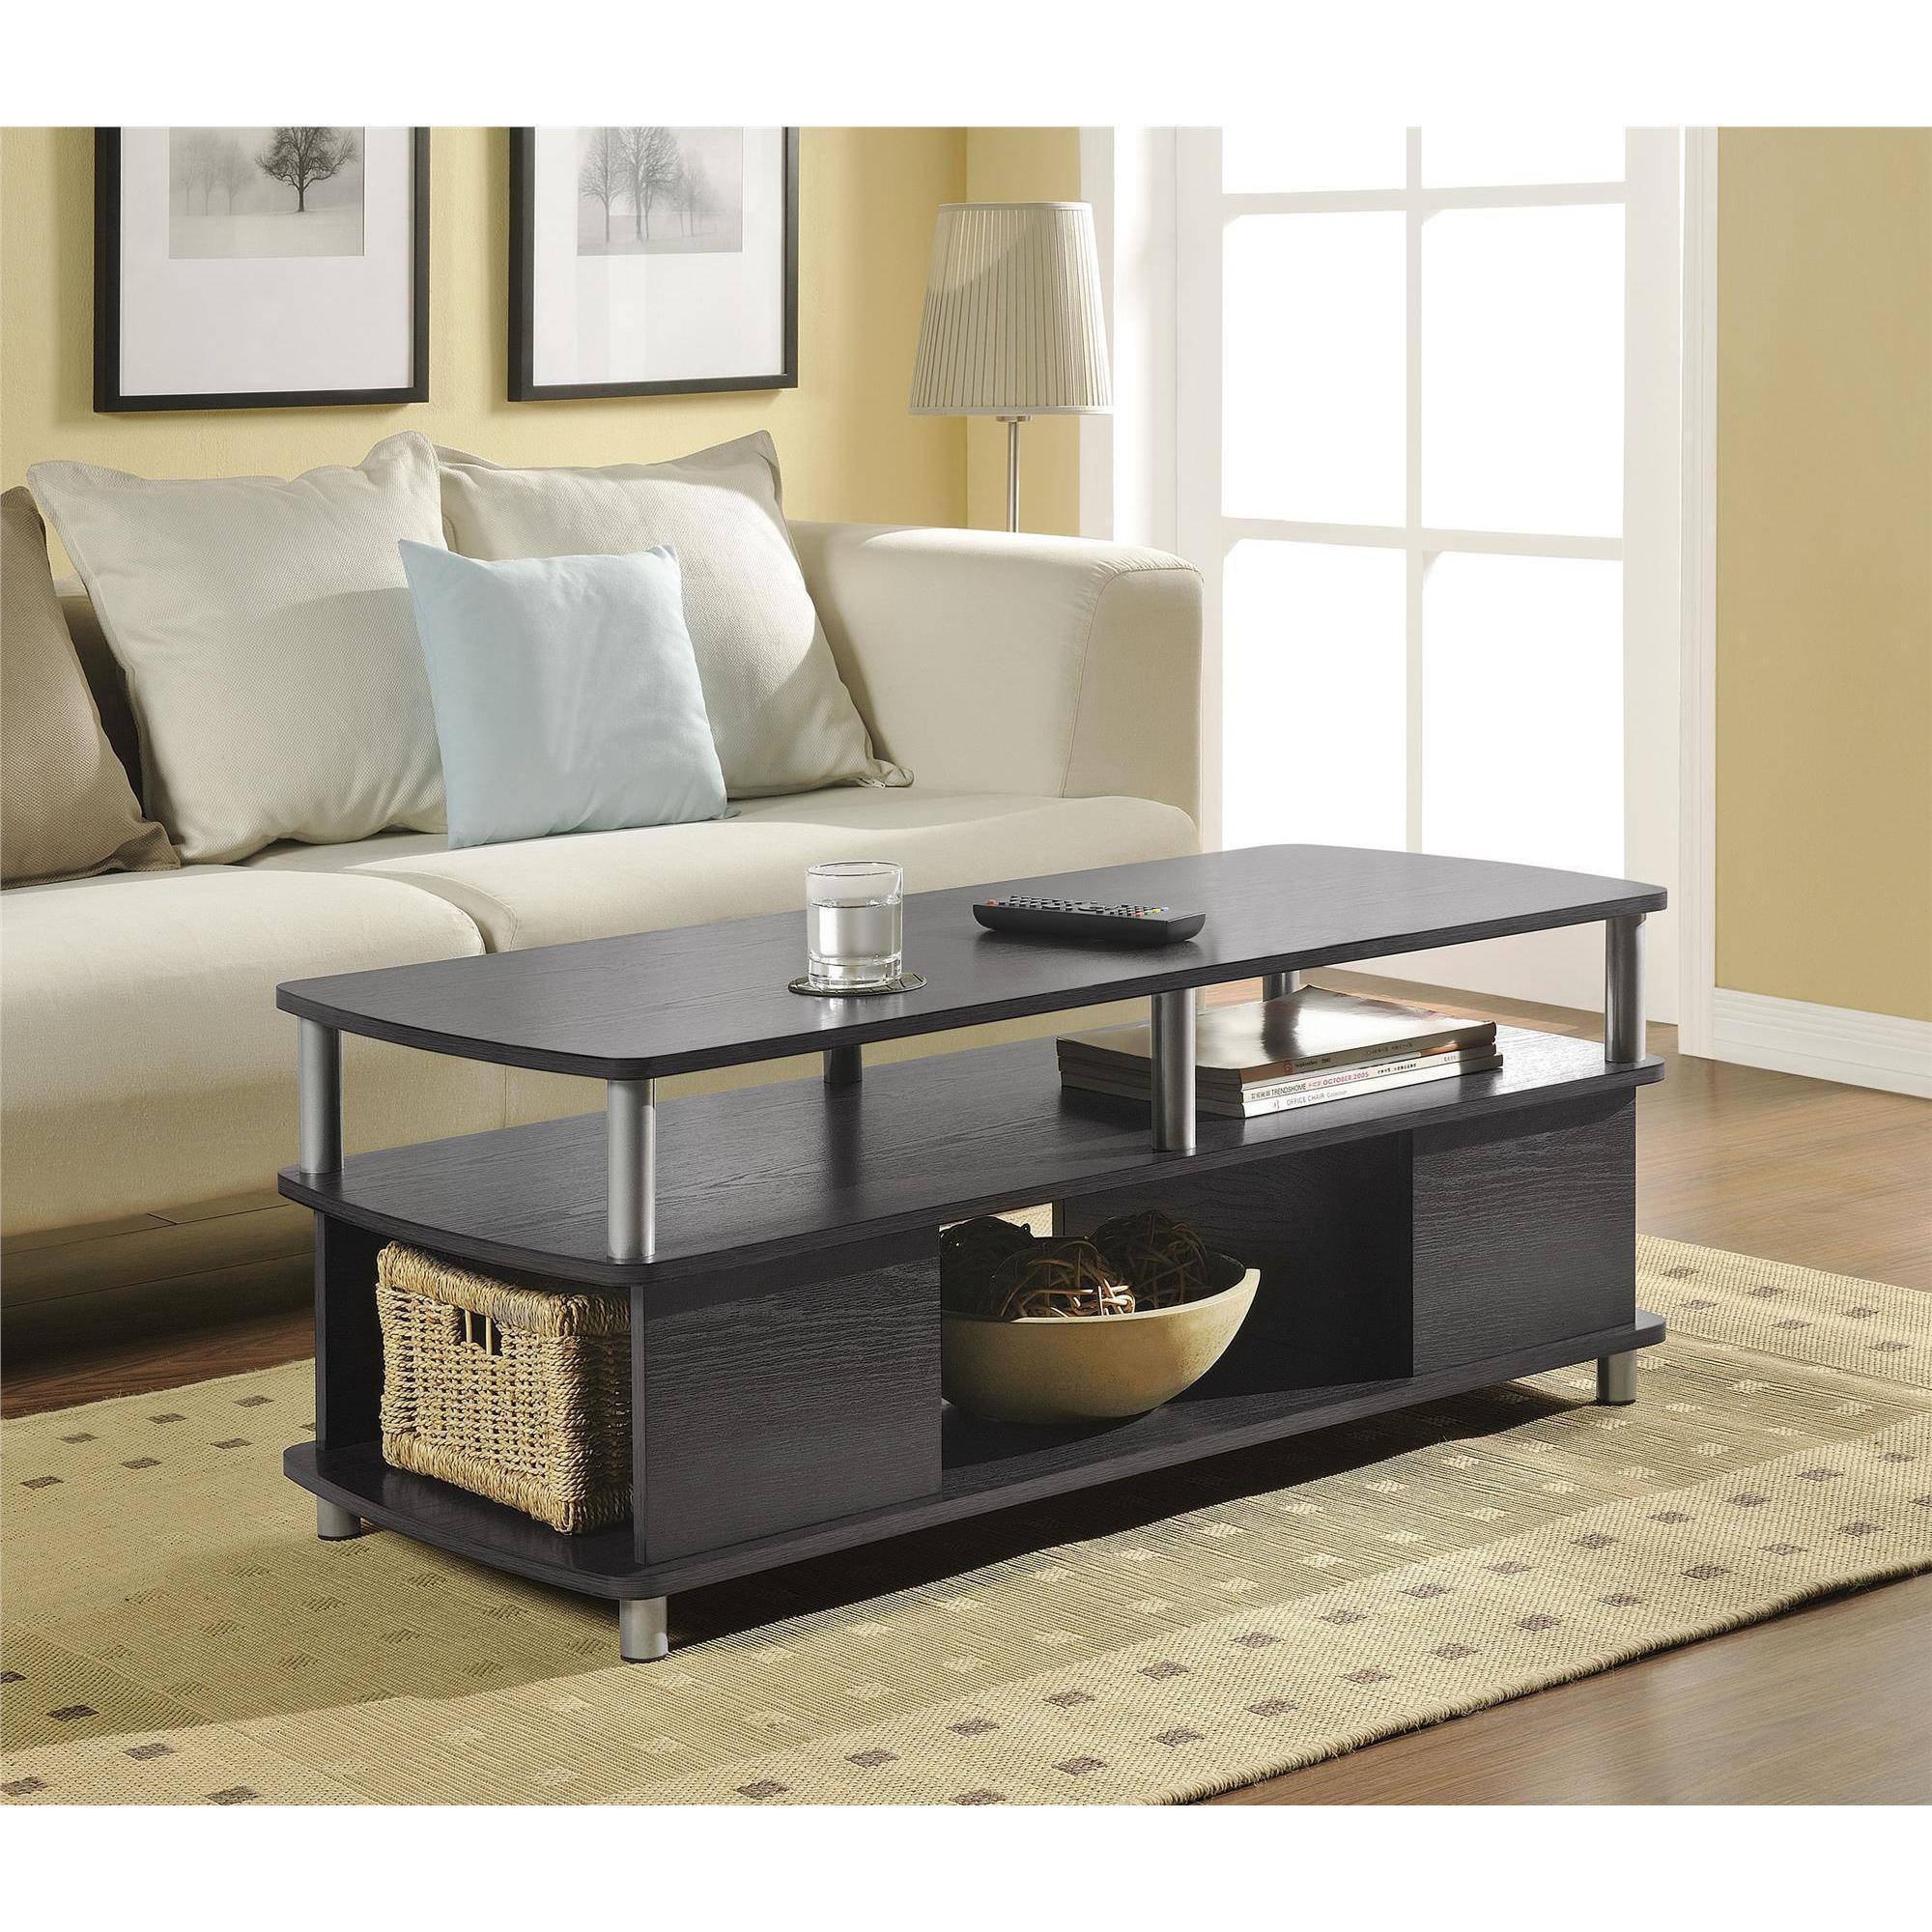 Hodedah Glass Rectangle Coffee Table Black Walmart